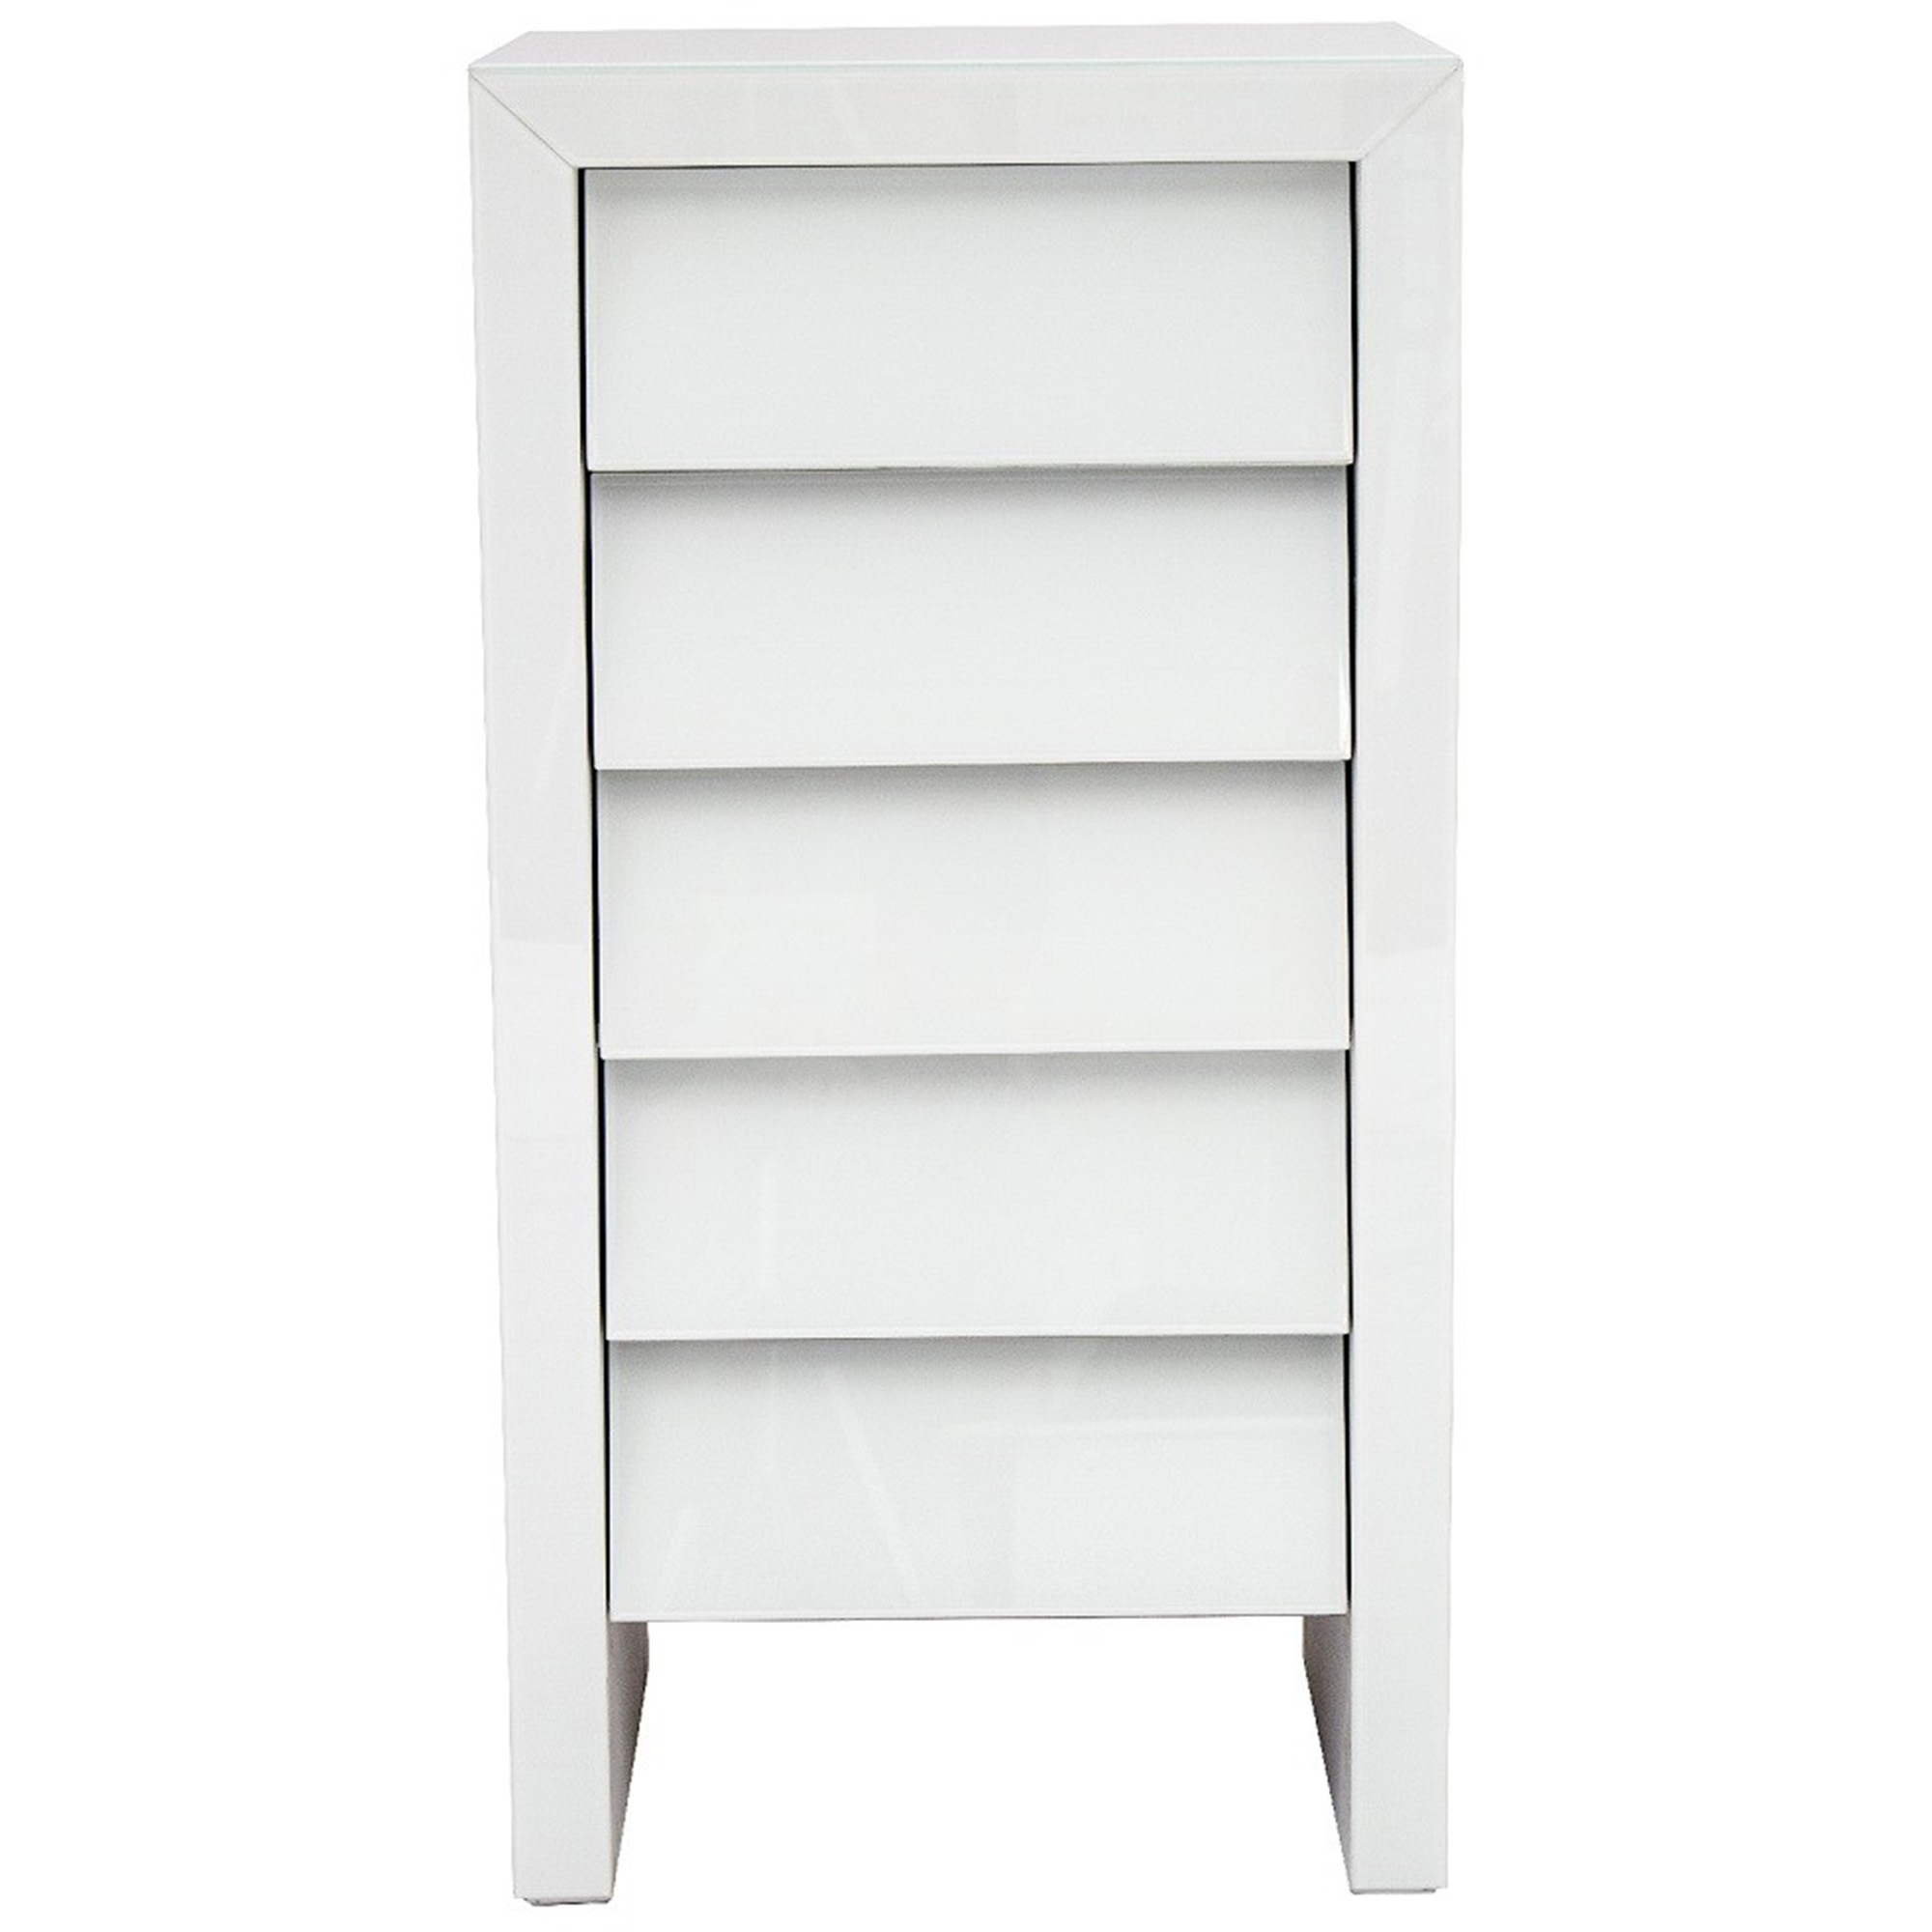 White Glass Tallboy Chest French Furniture from Homesdirect 365 UK